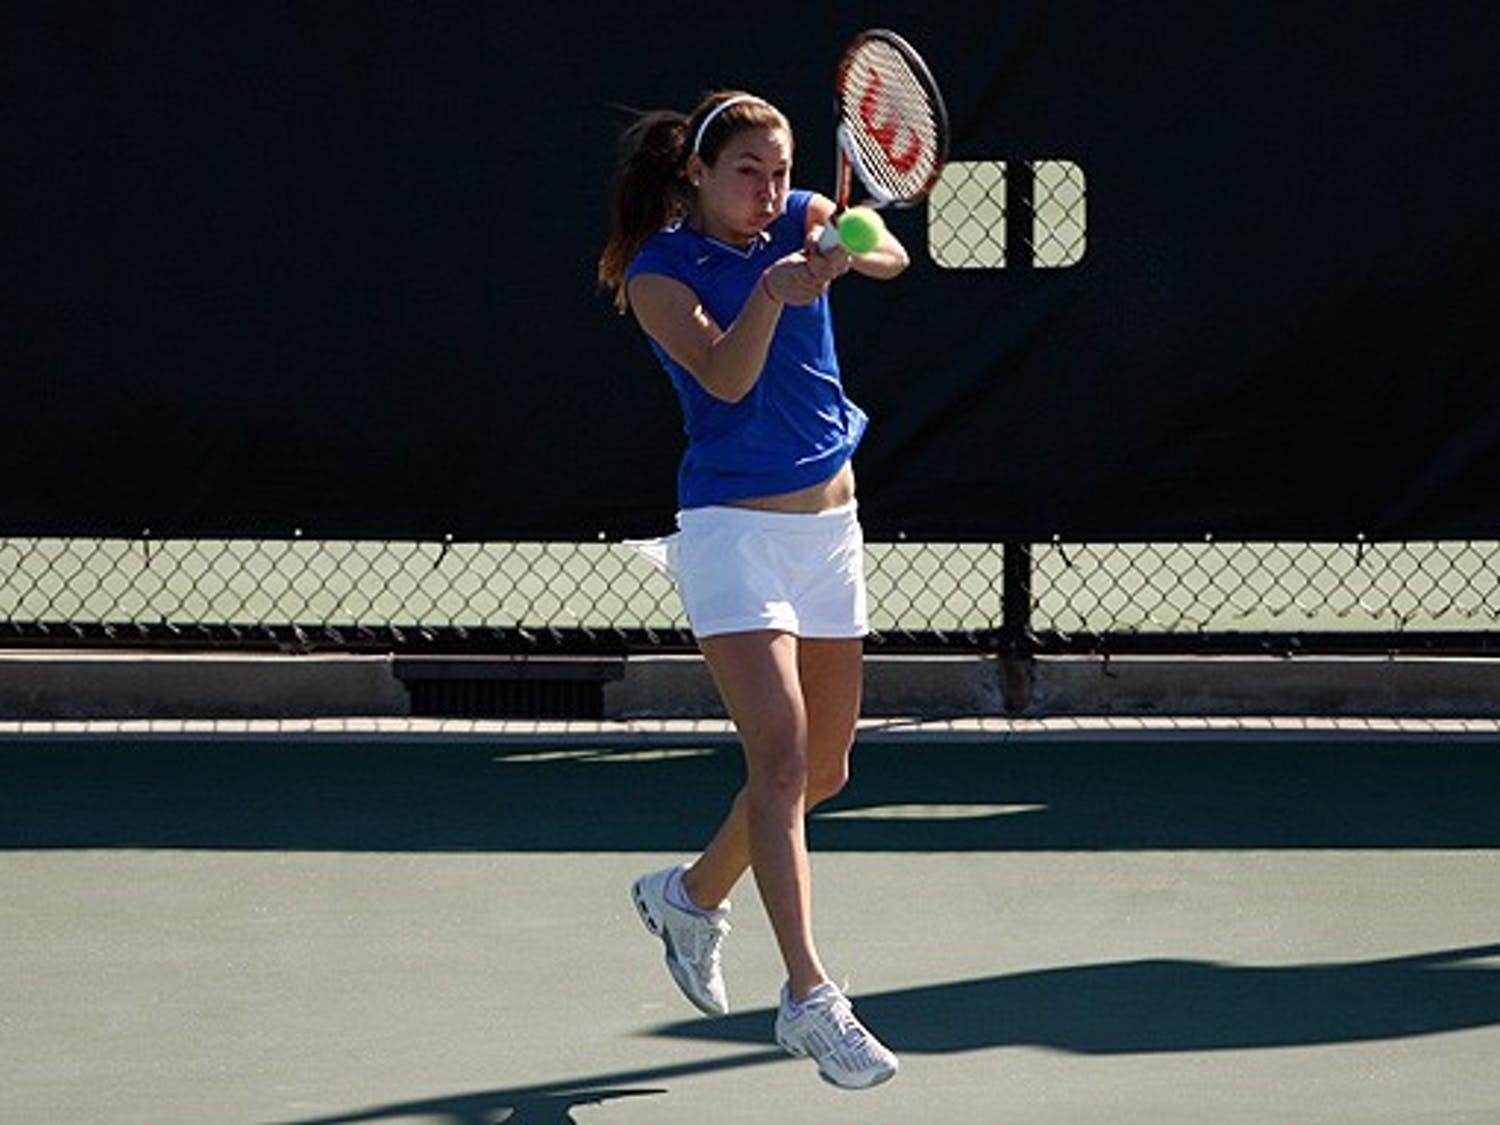 Duke was no match for the No. 9 Gators, who recorded their 74th consecutive regular season home victory over the No. 6 Blue Devils Sunday, 7-0.